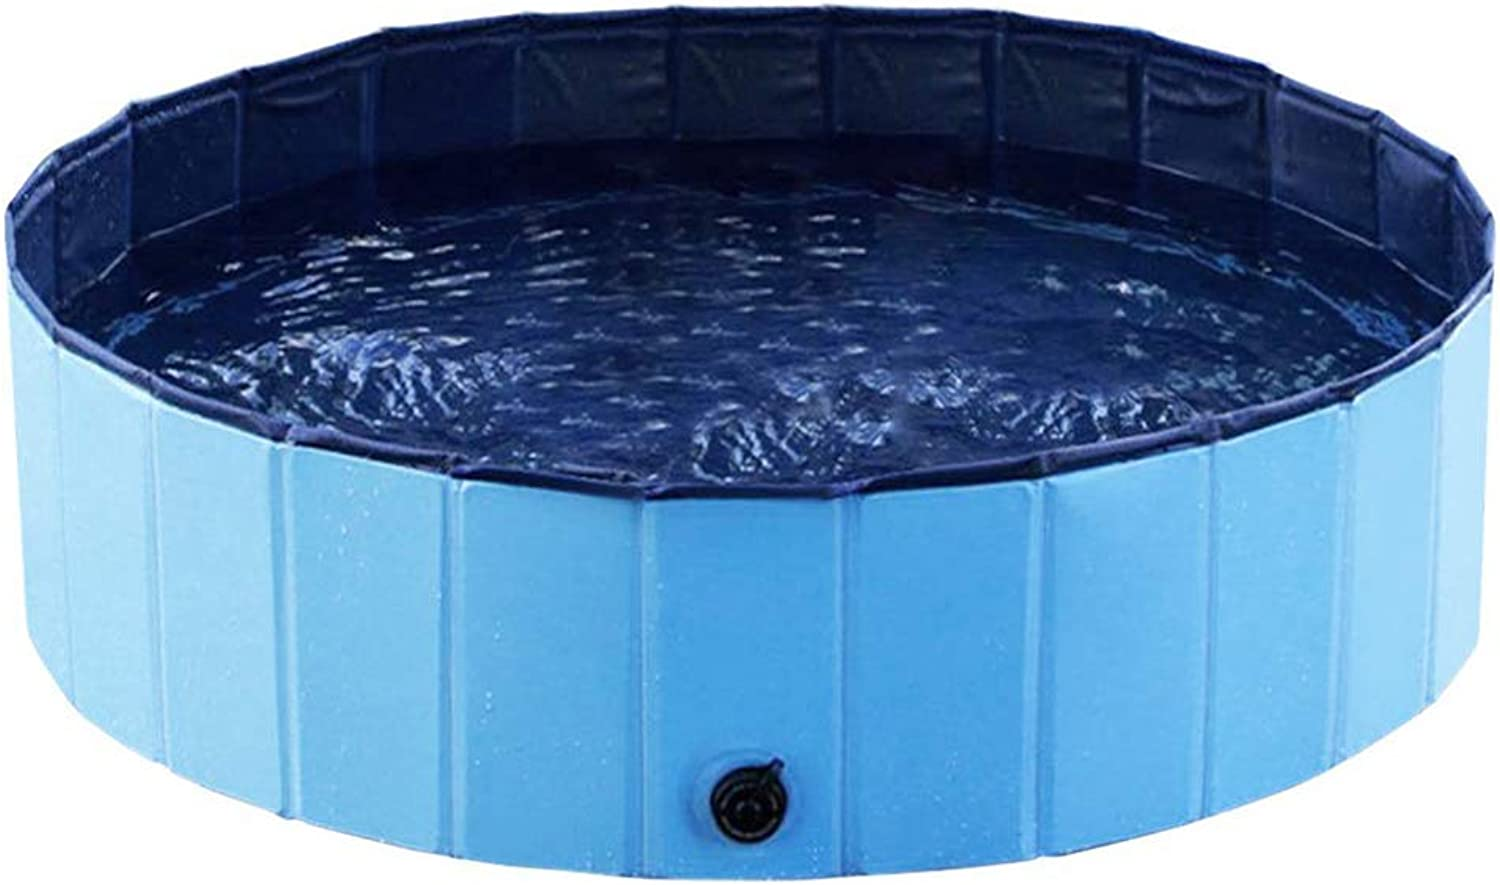 Foldable Dog Bath Pool Portable Pet Bathing Tub Kiddie Pool,bluee,S